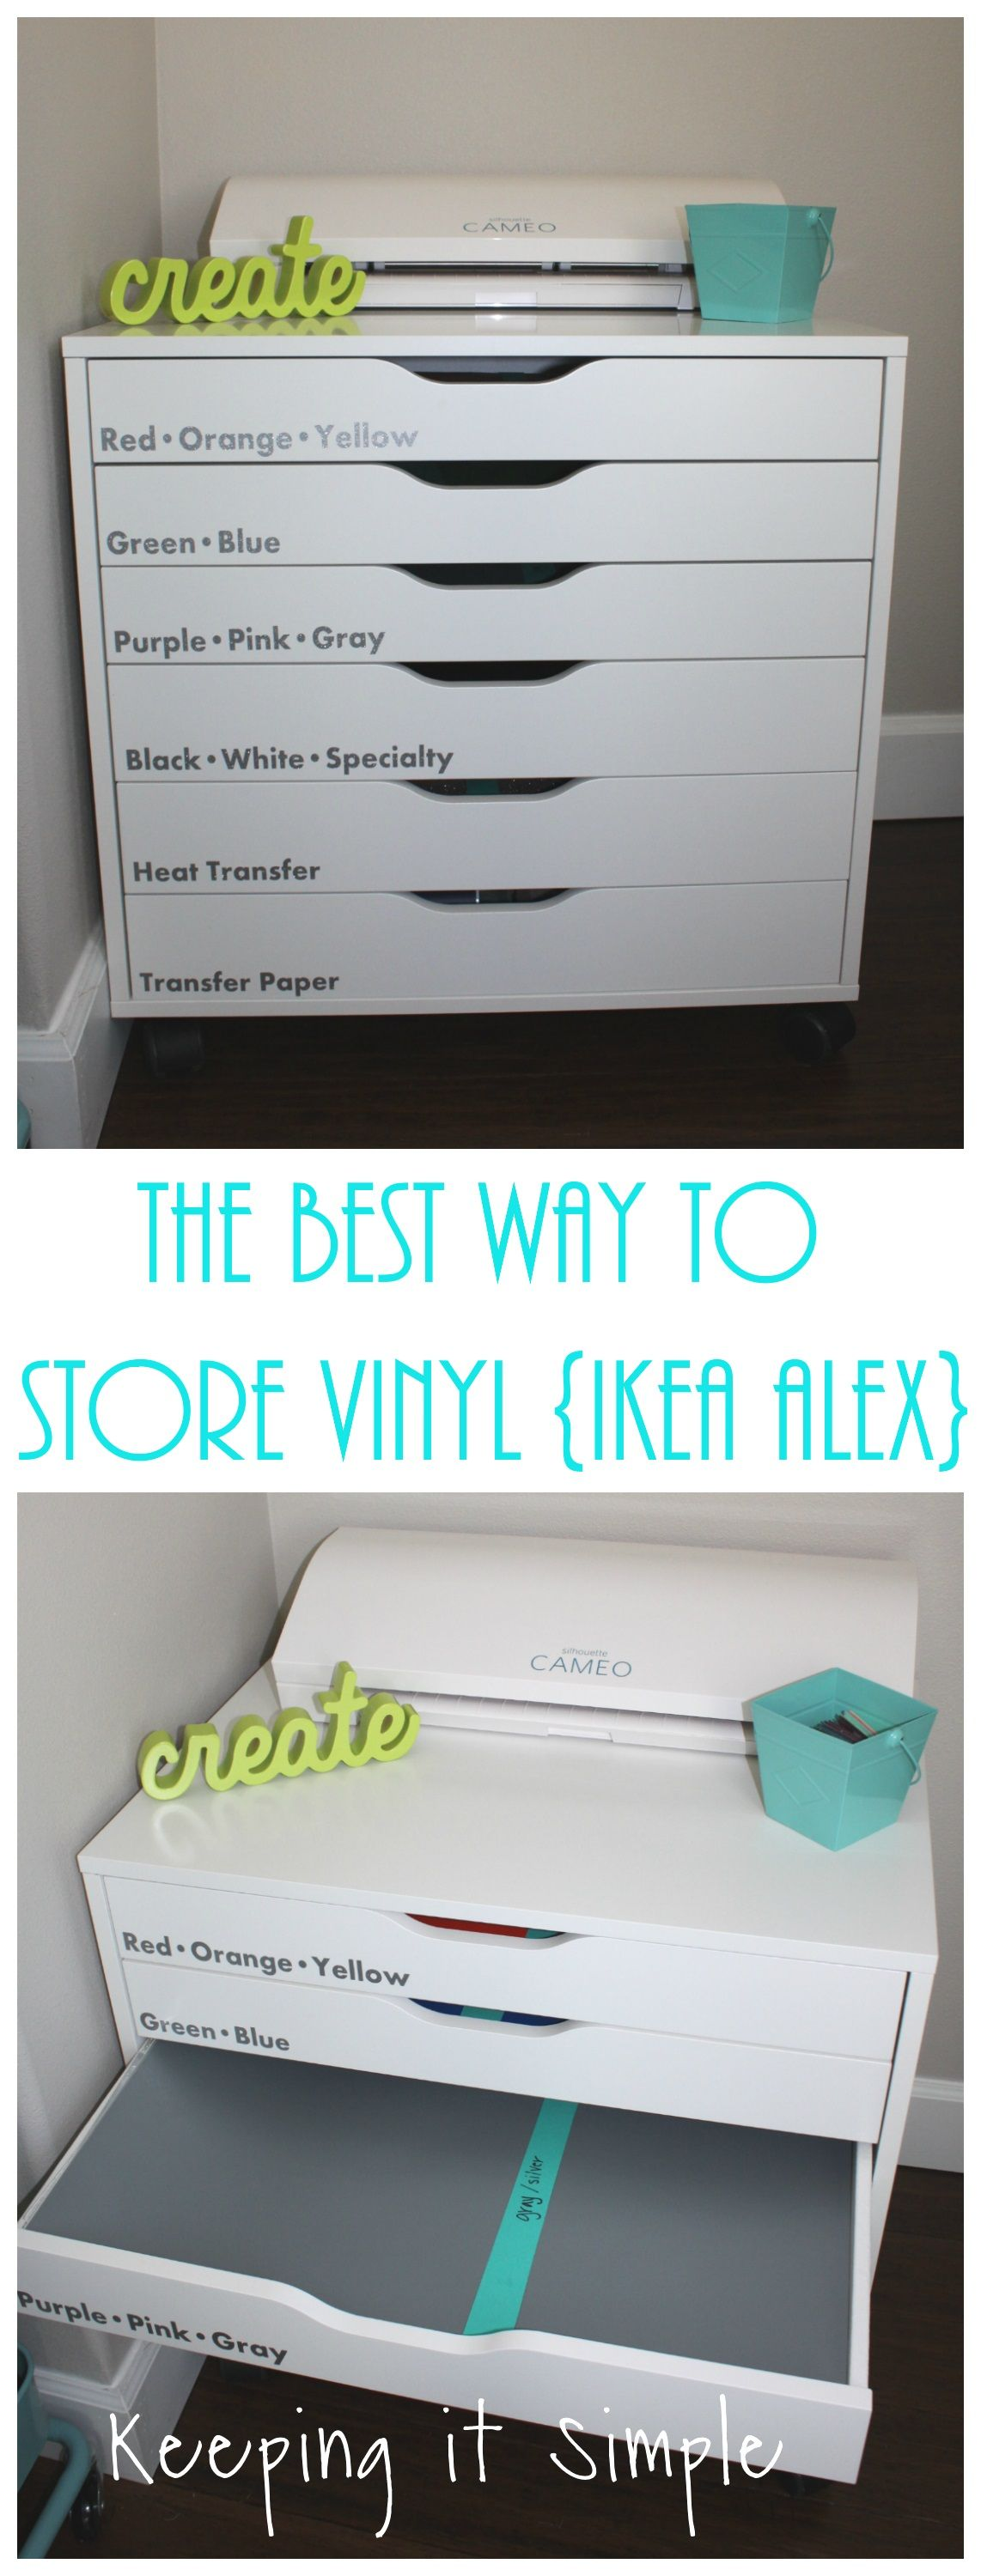 The Best Way To Store Vinyl Ikea Alex Storage Unit Keeping It Simple Craft Room Storage Craft Room Craft Room Organization